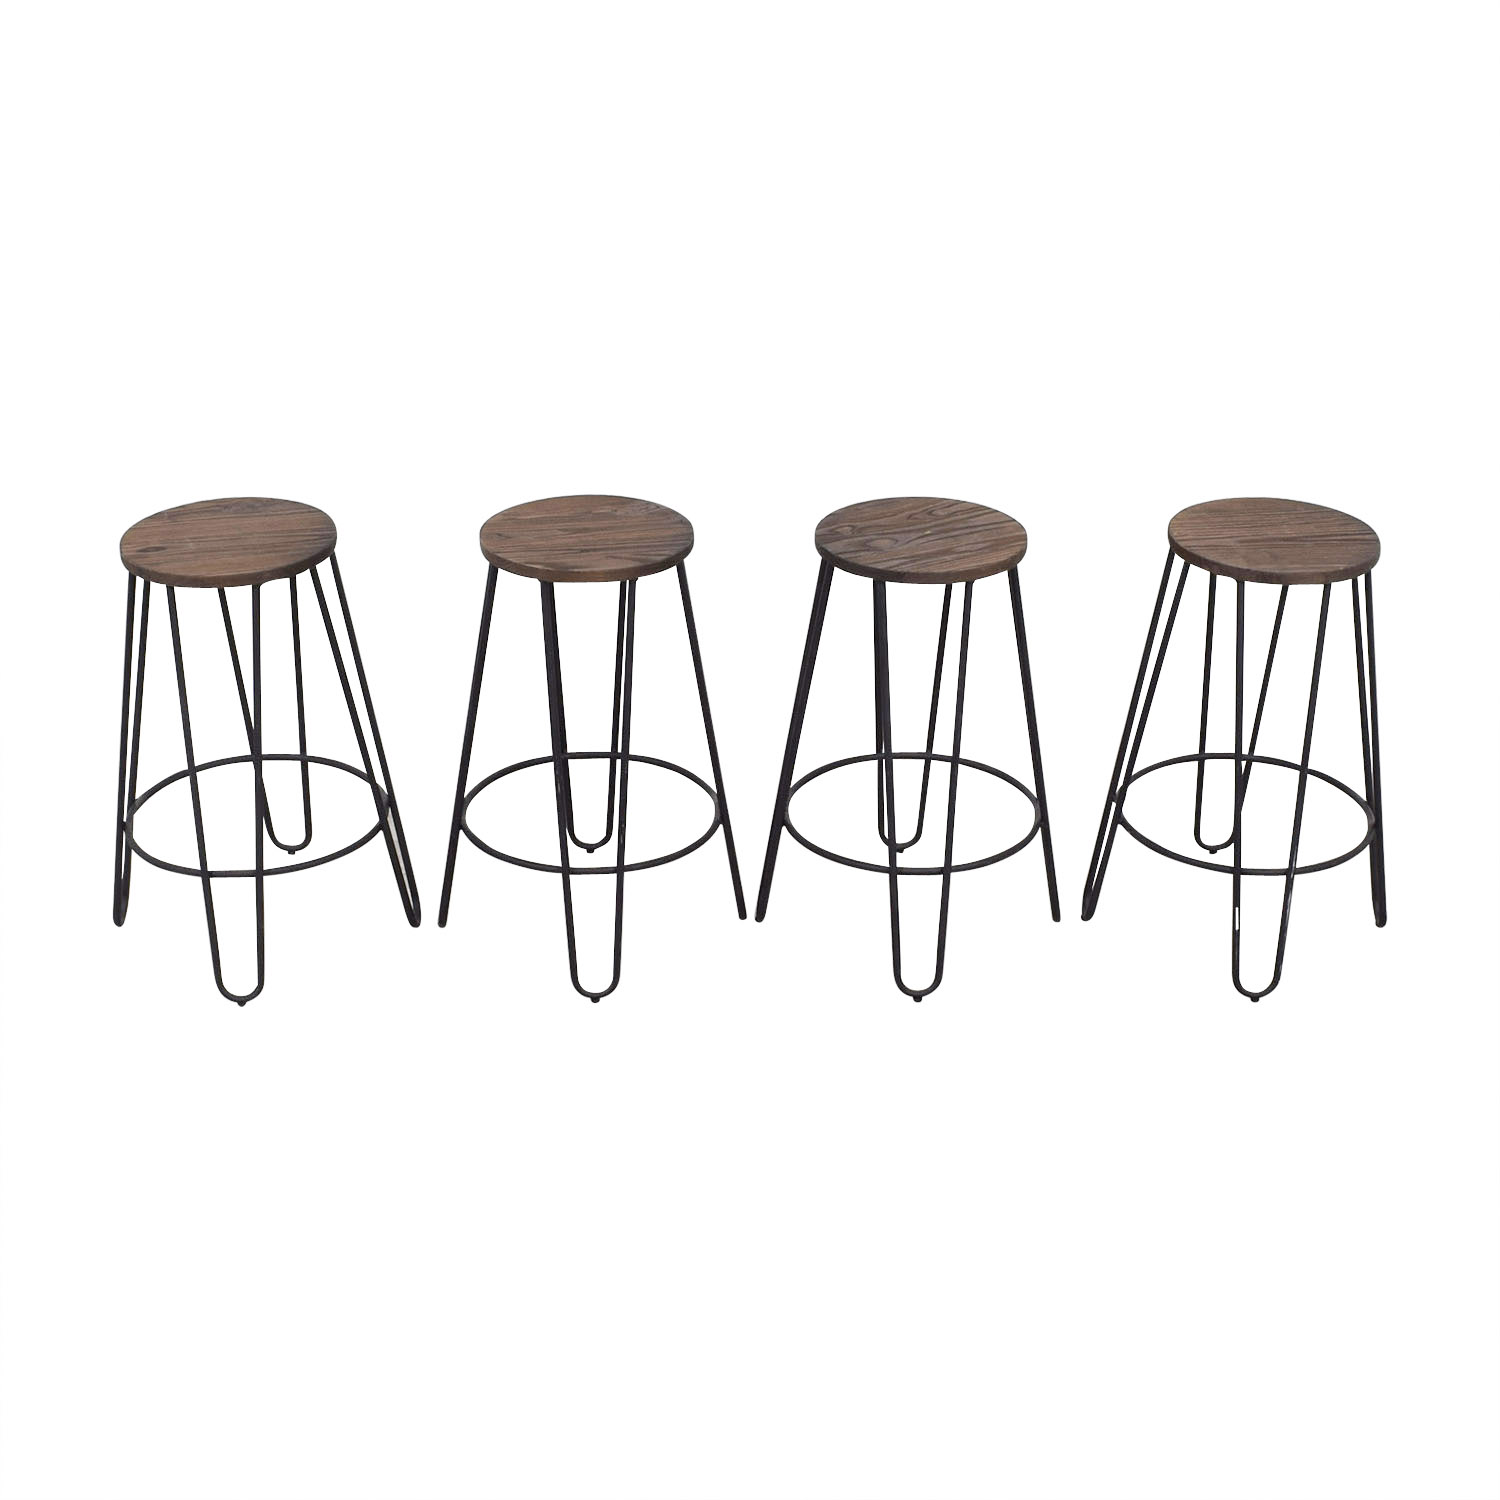 buy  Black Wood and Metal Stools online